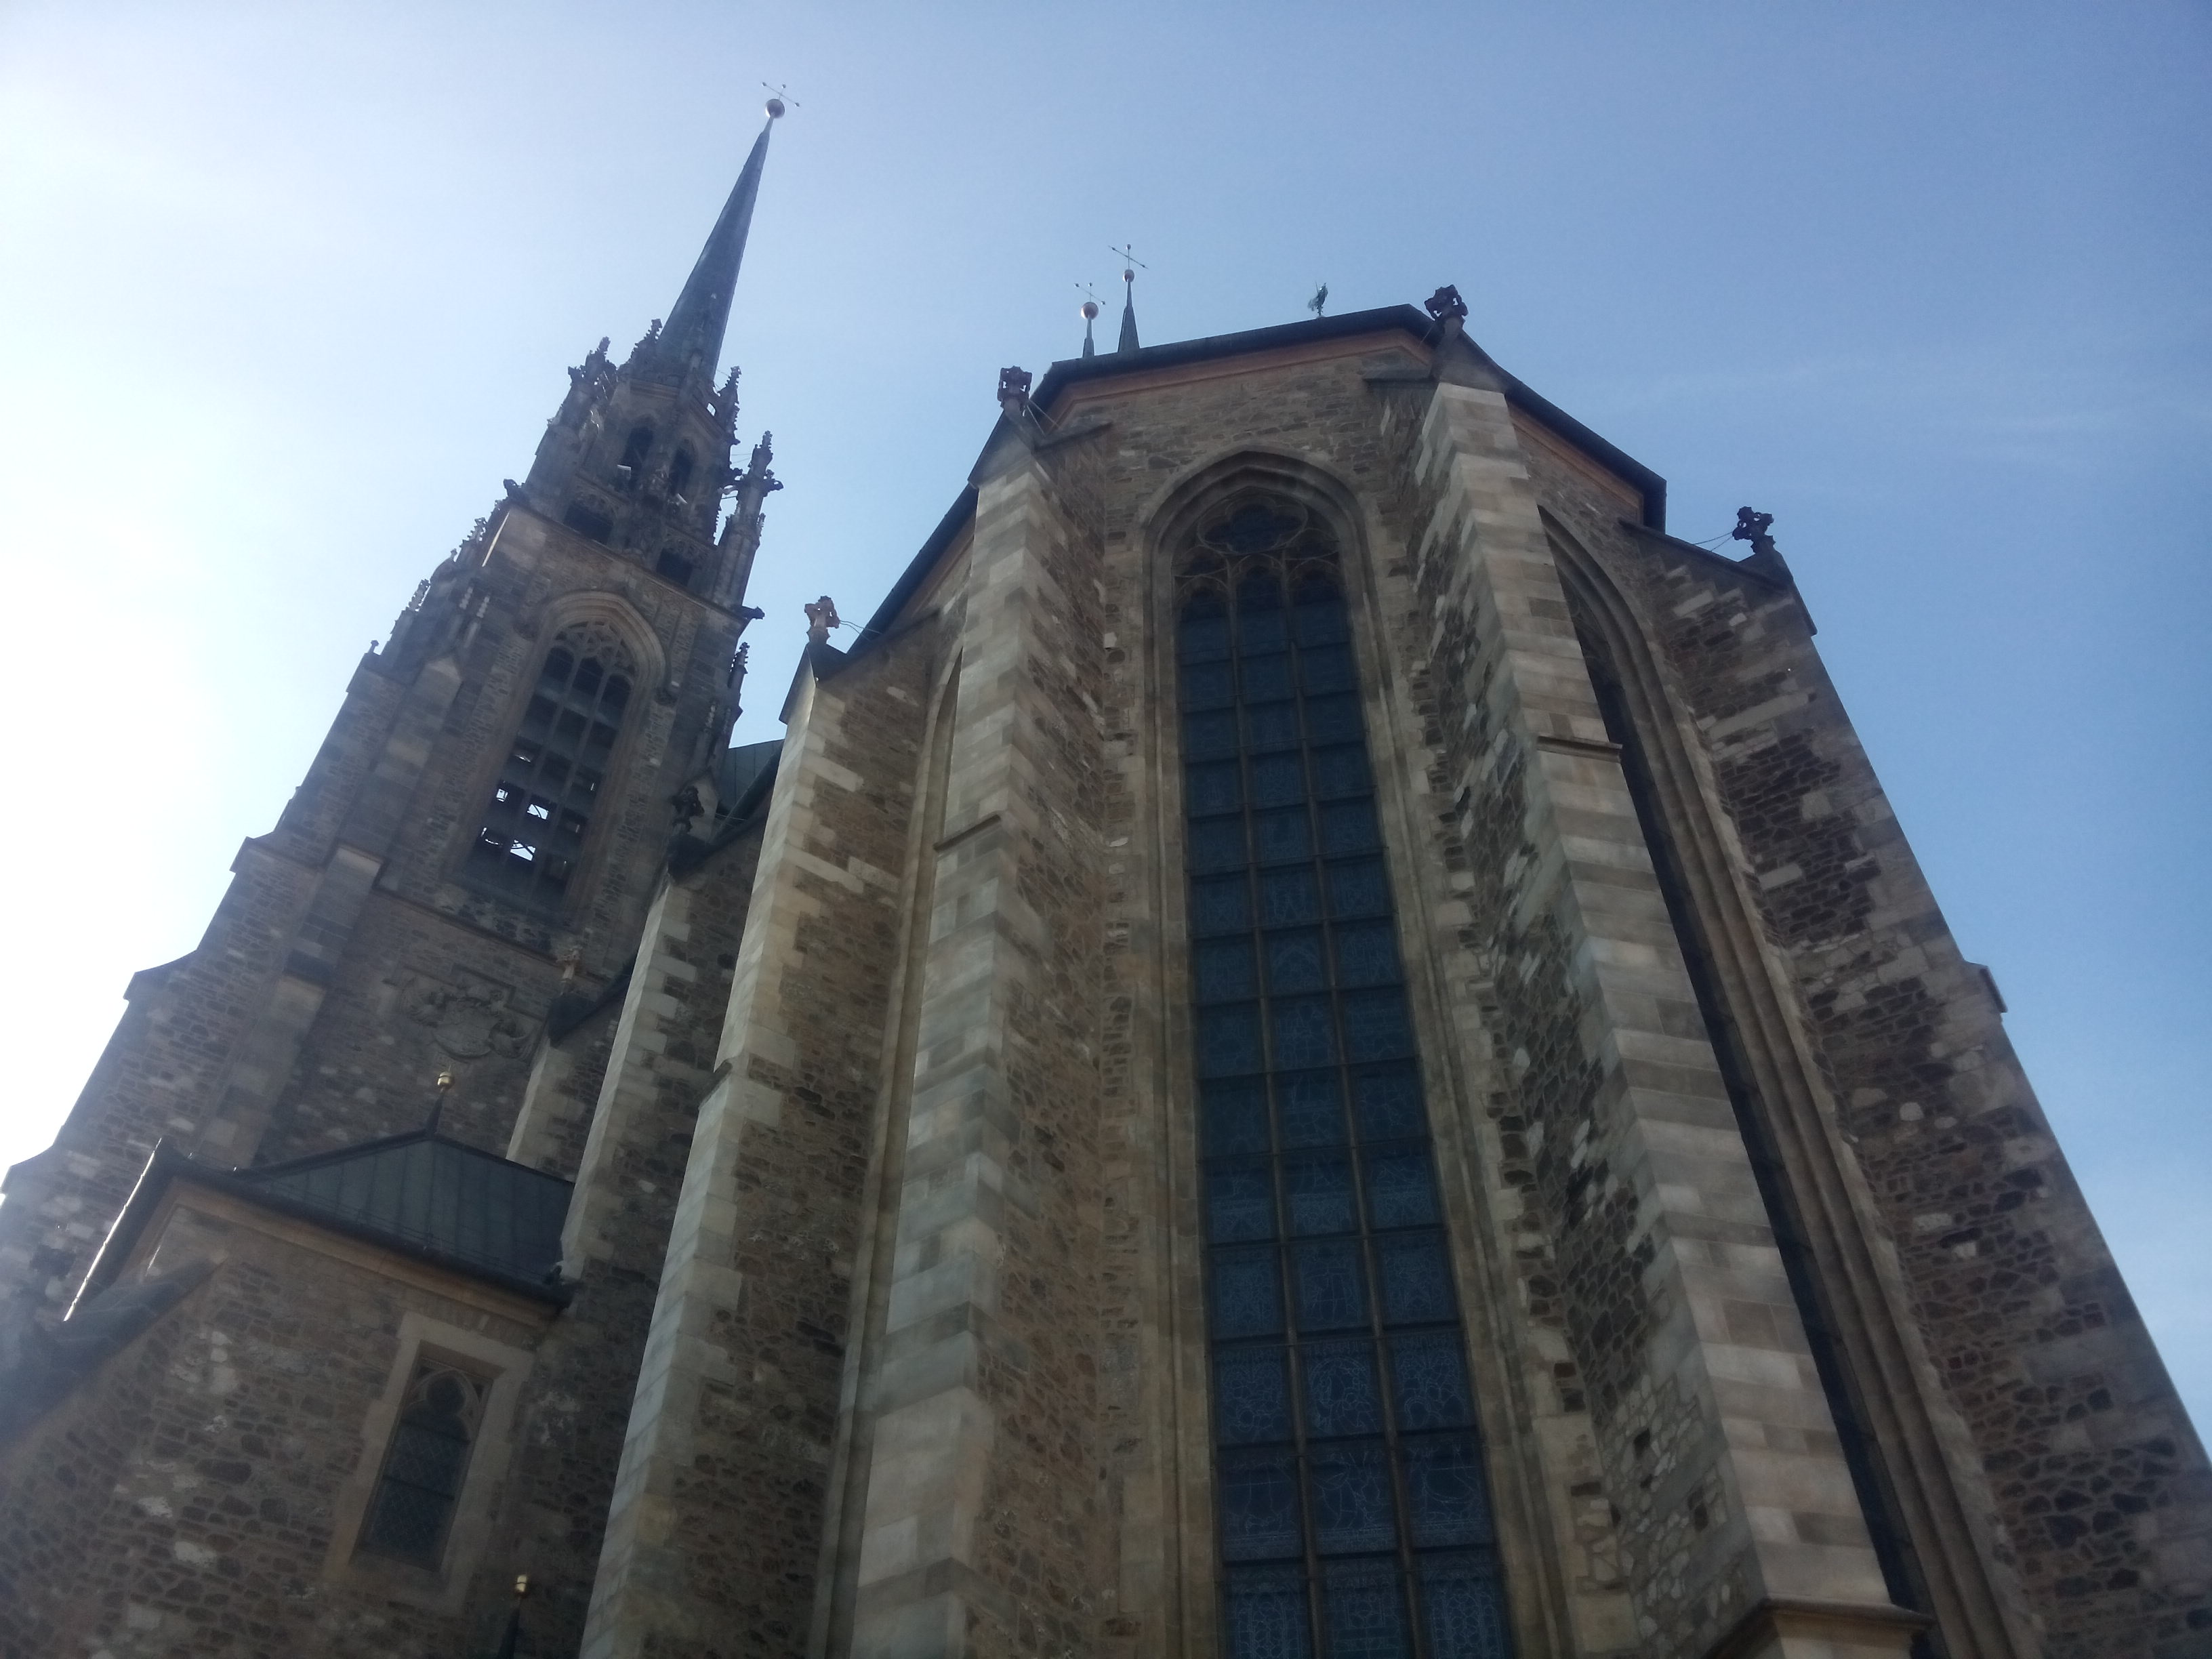 View from below of the side of a cathedral with big windows